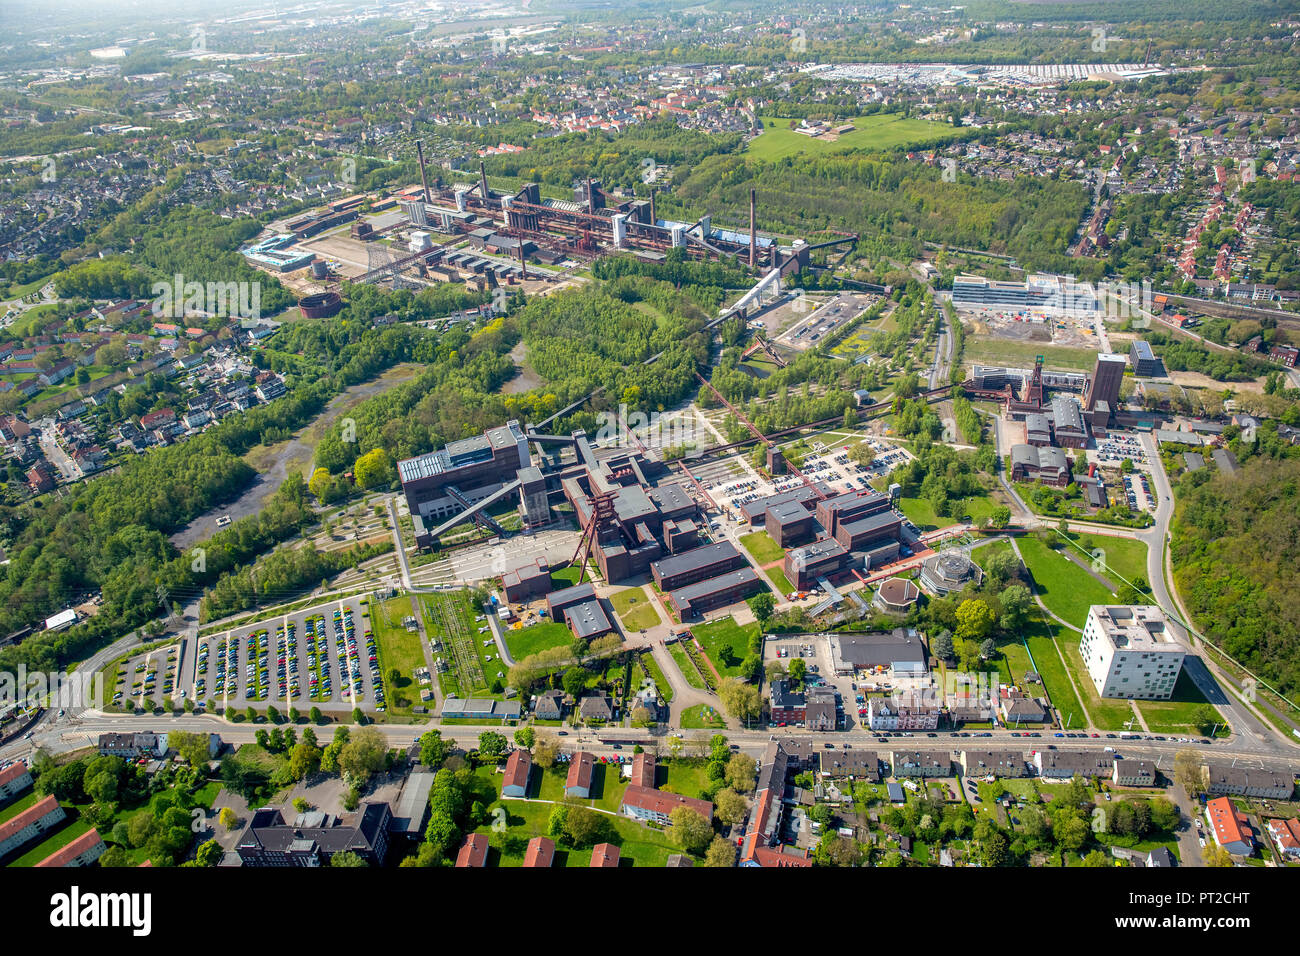 Zollverein, World Cultural Heritage Zeche Zollverein, Essen, Ruhr Area, North Rhine-Westphalia, Germany, Europe - Stock Image